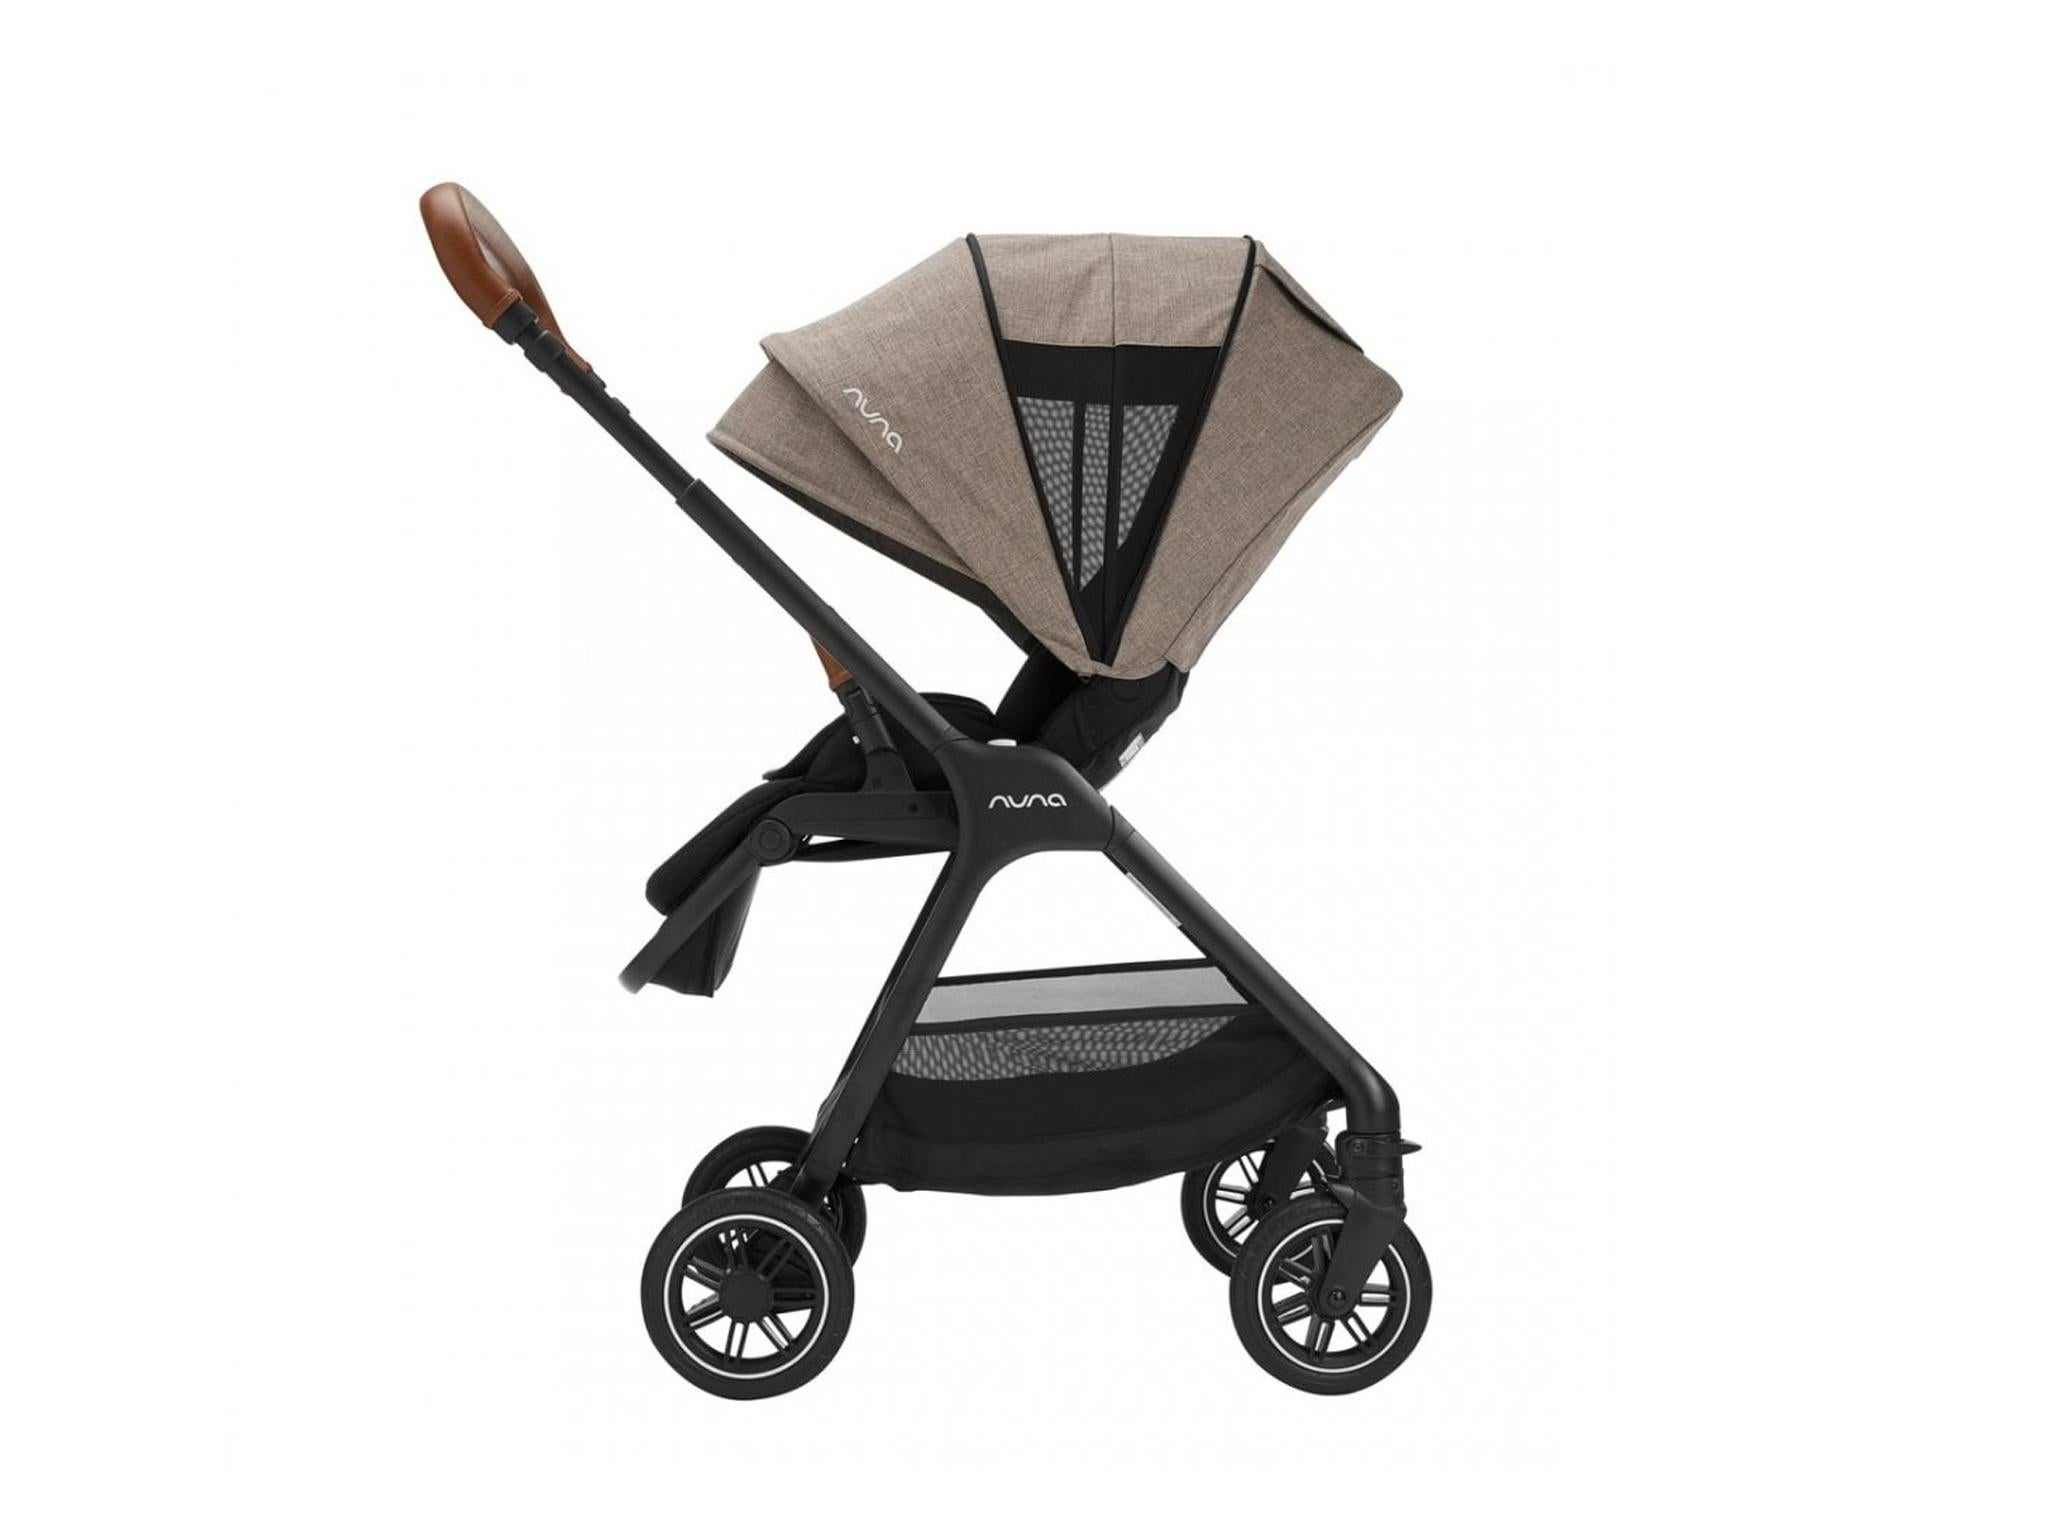 Best compact strollers for babies and toddlers 2020